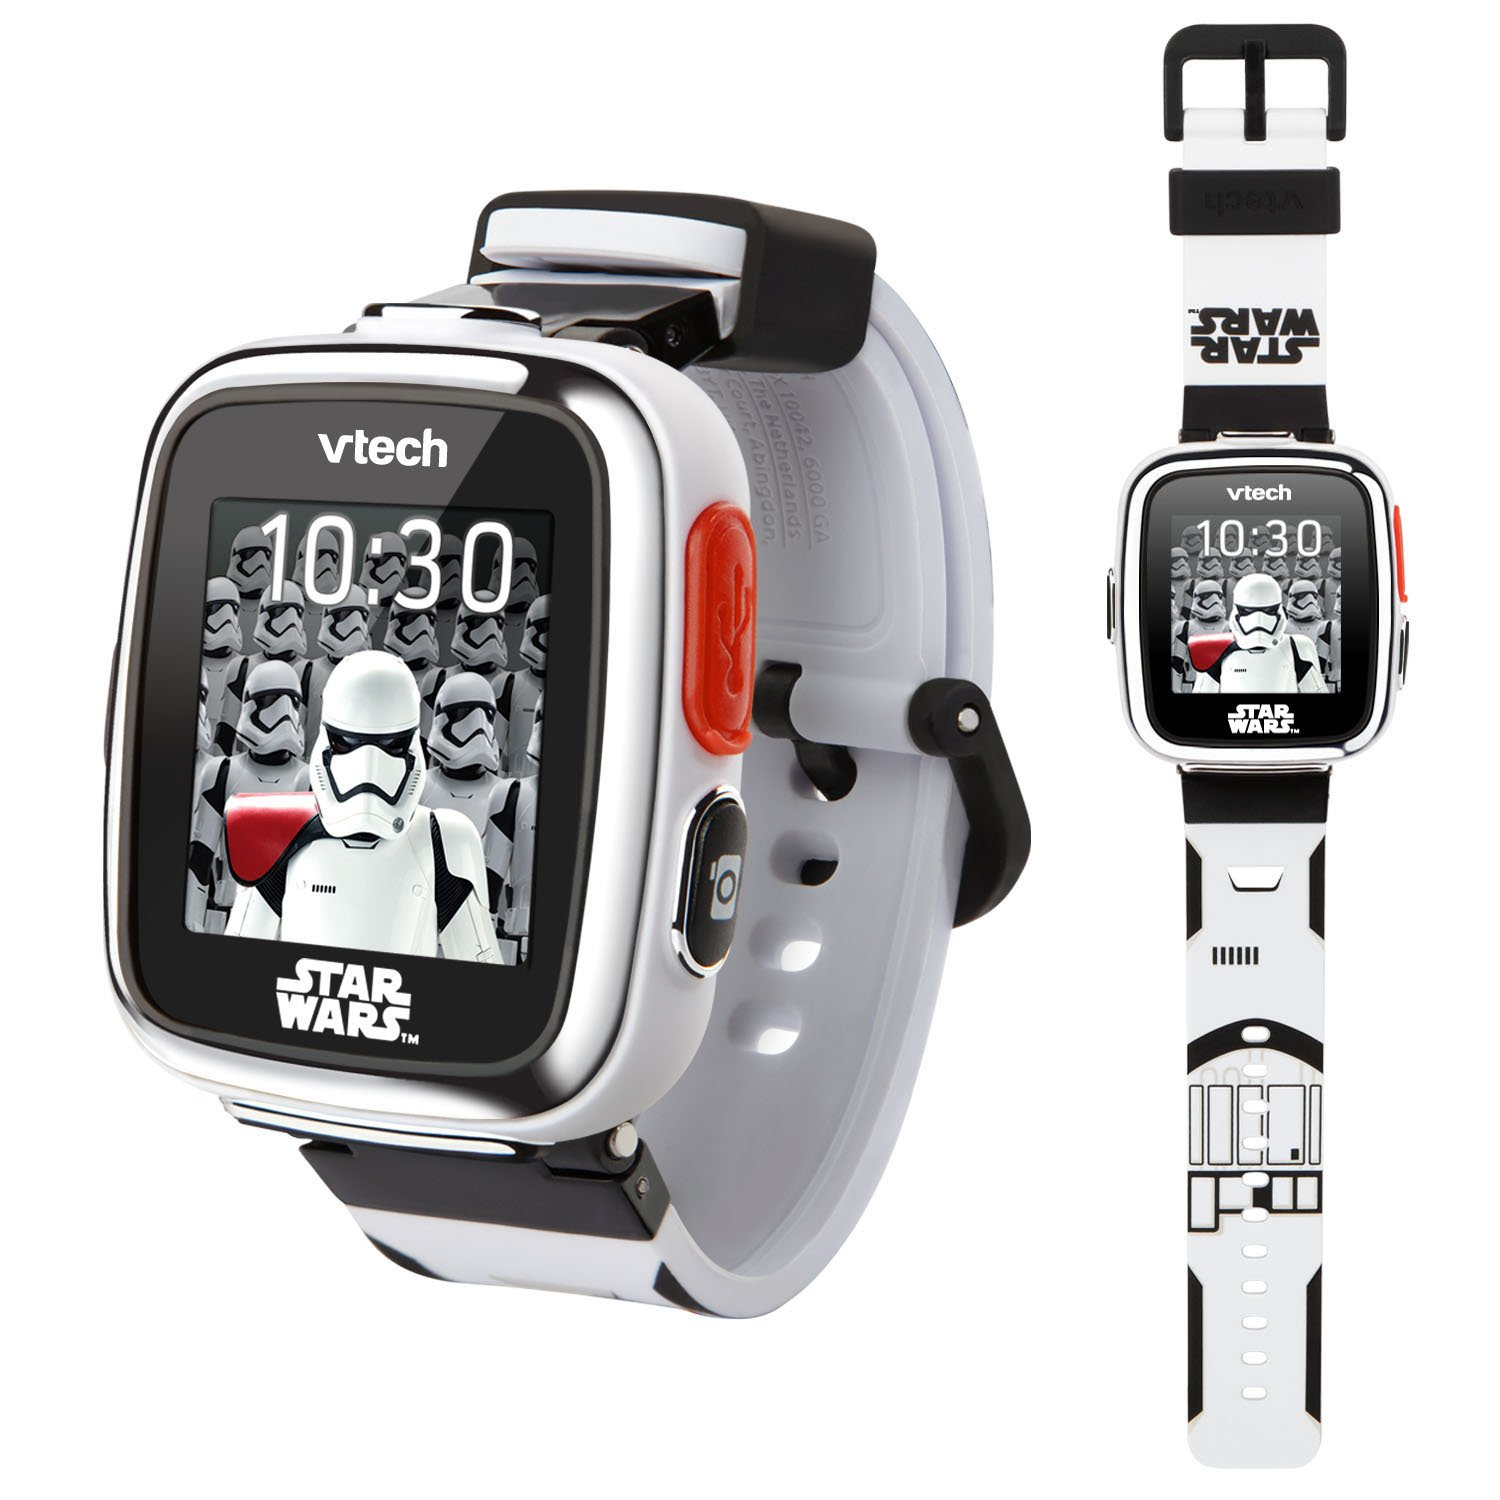 VTech Star Wars First Order Stormtrooper Smartwatch with Camera Amazon Exclusive, White by VTech